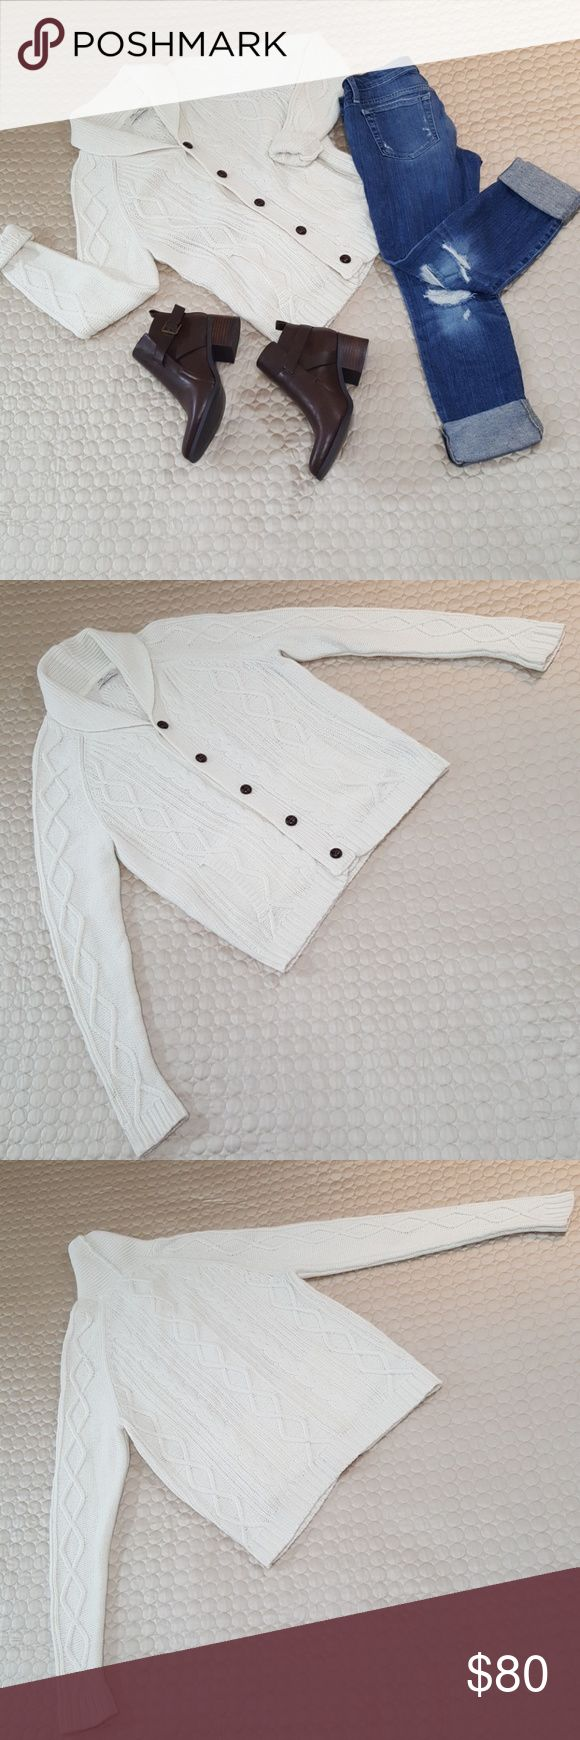 """H.E. Oversized Boyfriend Cardigan In excellent like new condition... H.E. boyfriend  cardigan.. 27"""" Long.. shoulders 17"""".. Arms 29"""".. Waist 38""""... No rips, stains, holes, snags, or pilling.. Wool has been cleaned and conditioned for softness.. All item's are clean and ready to ship... H.E. Sweaters Cardigans"""